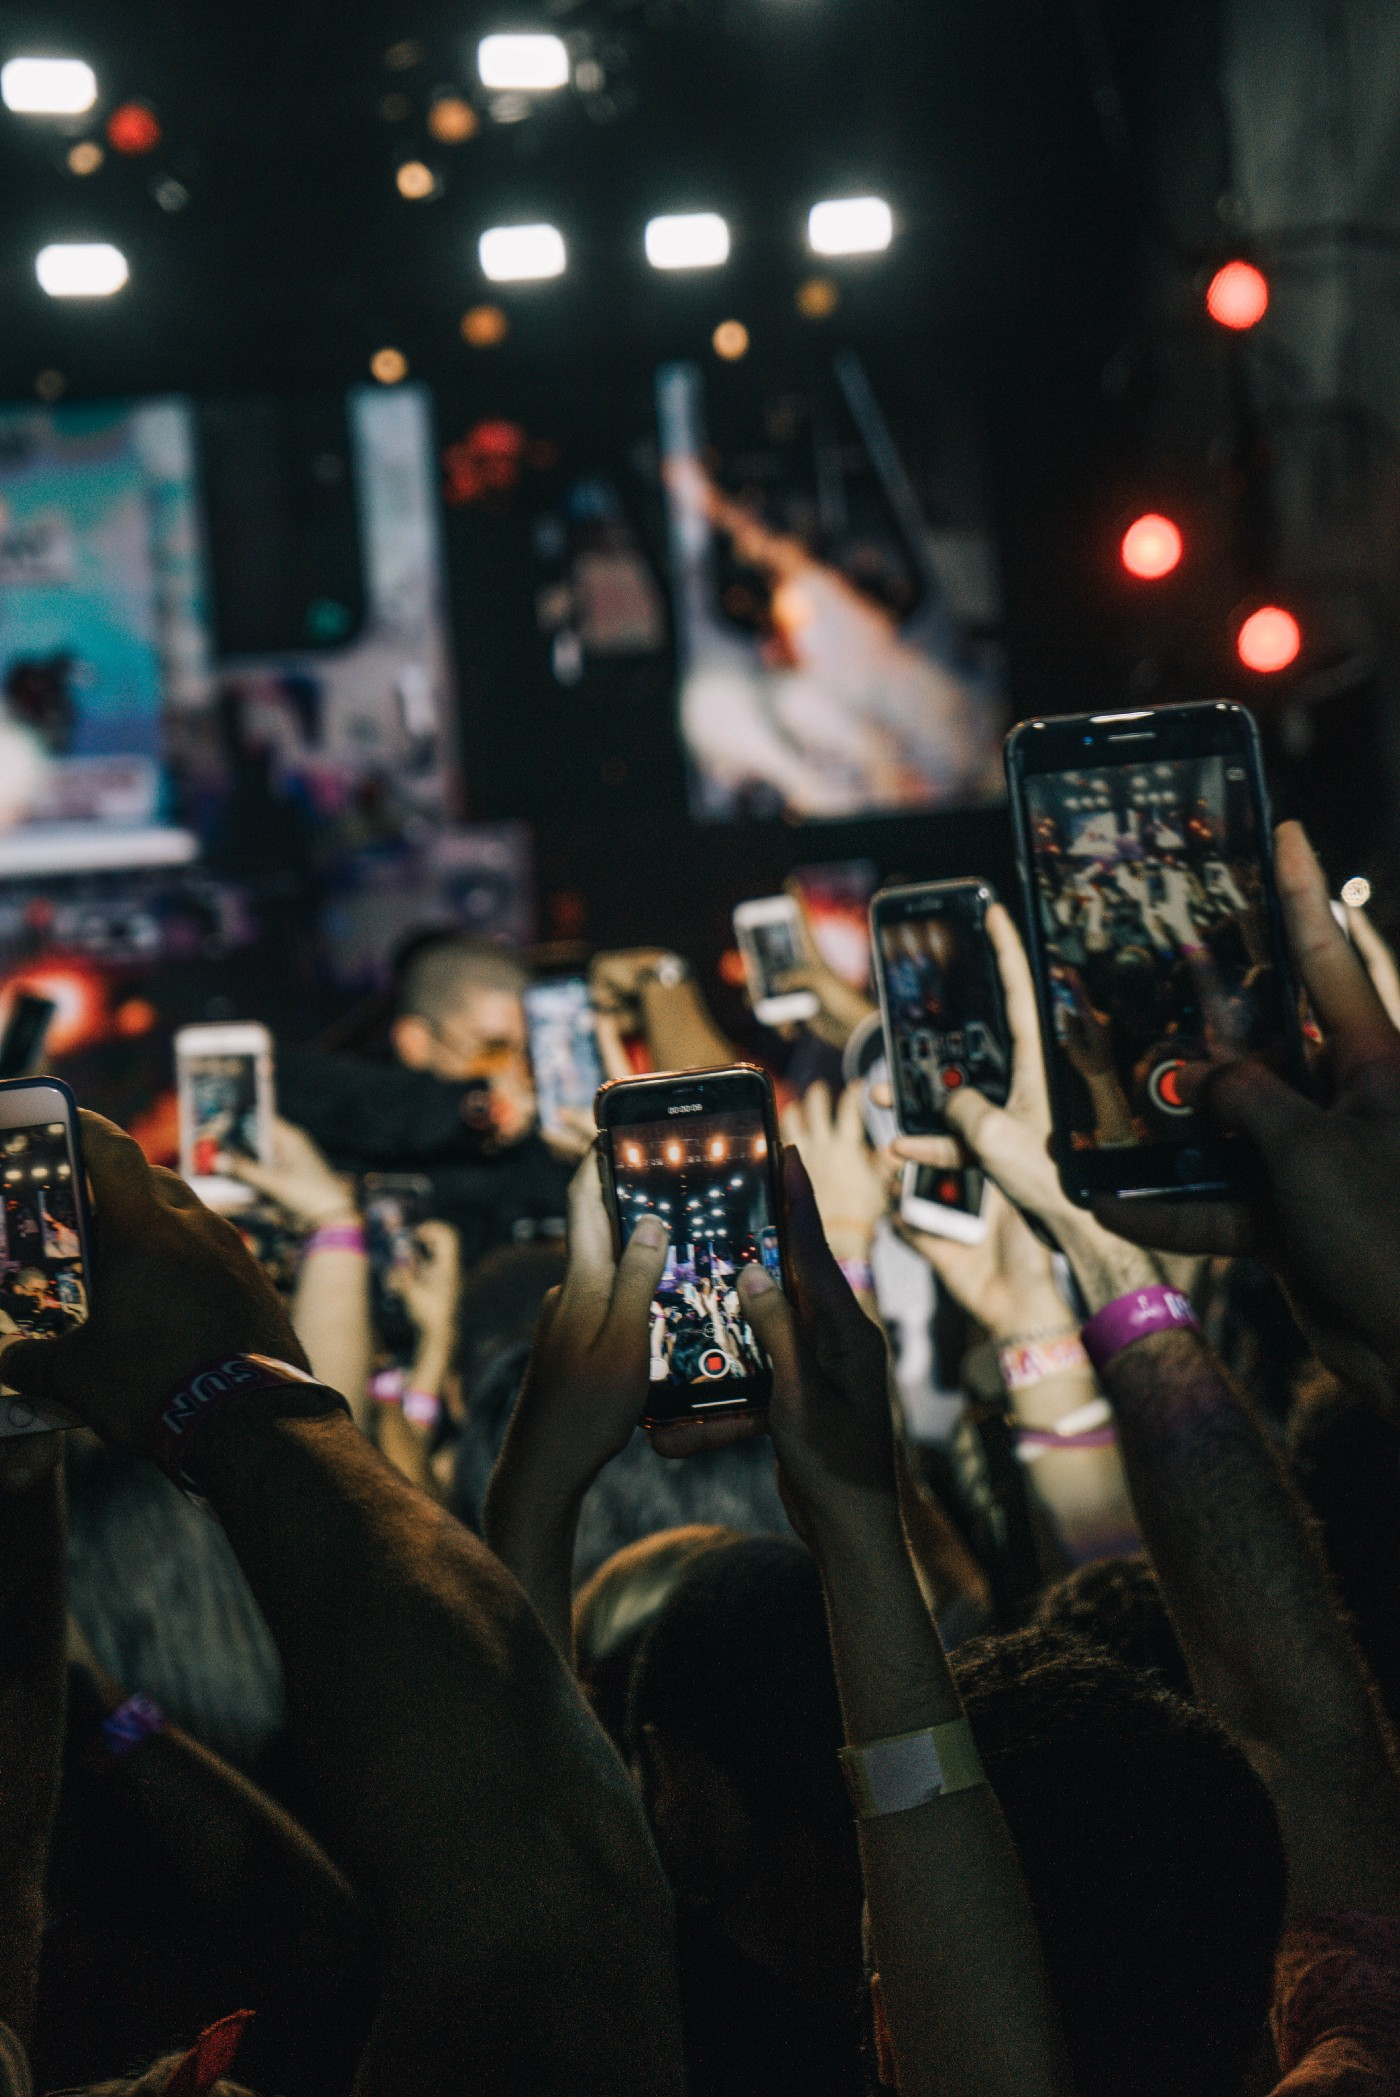 A mass of phones being held up in the air at a venue to post on social media.